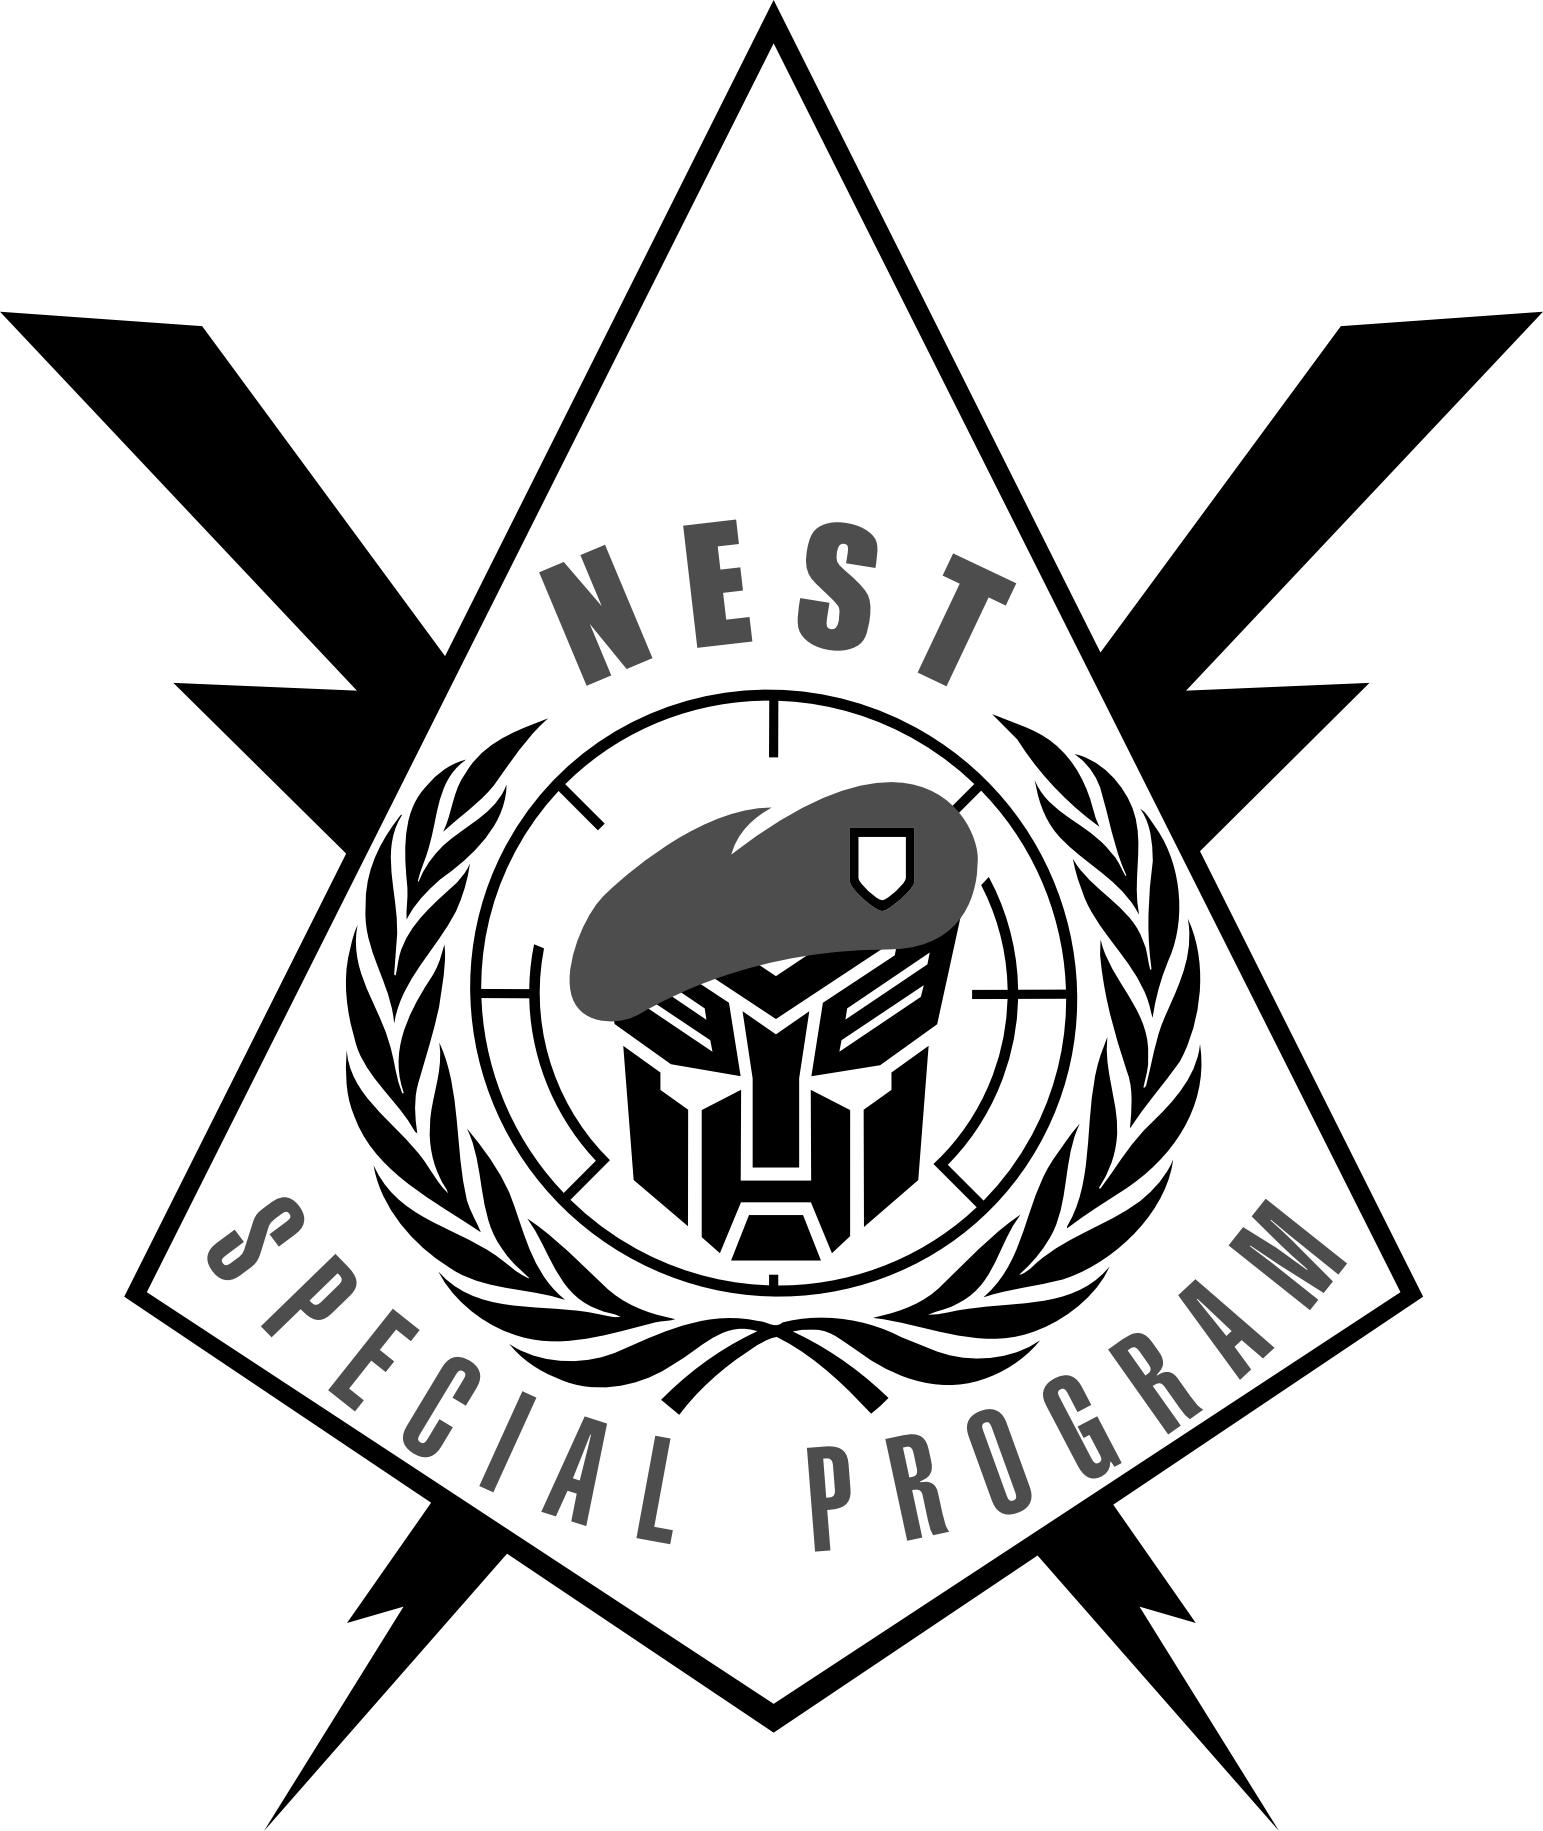 clipart free stock Clipart nest black and white.  d artwork free